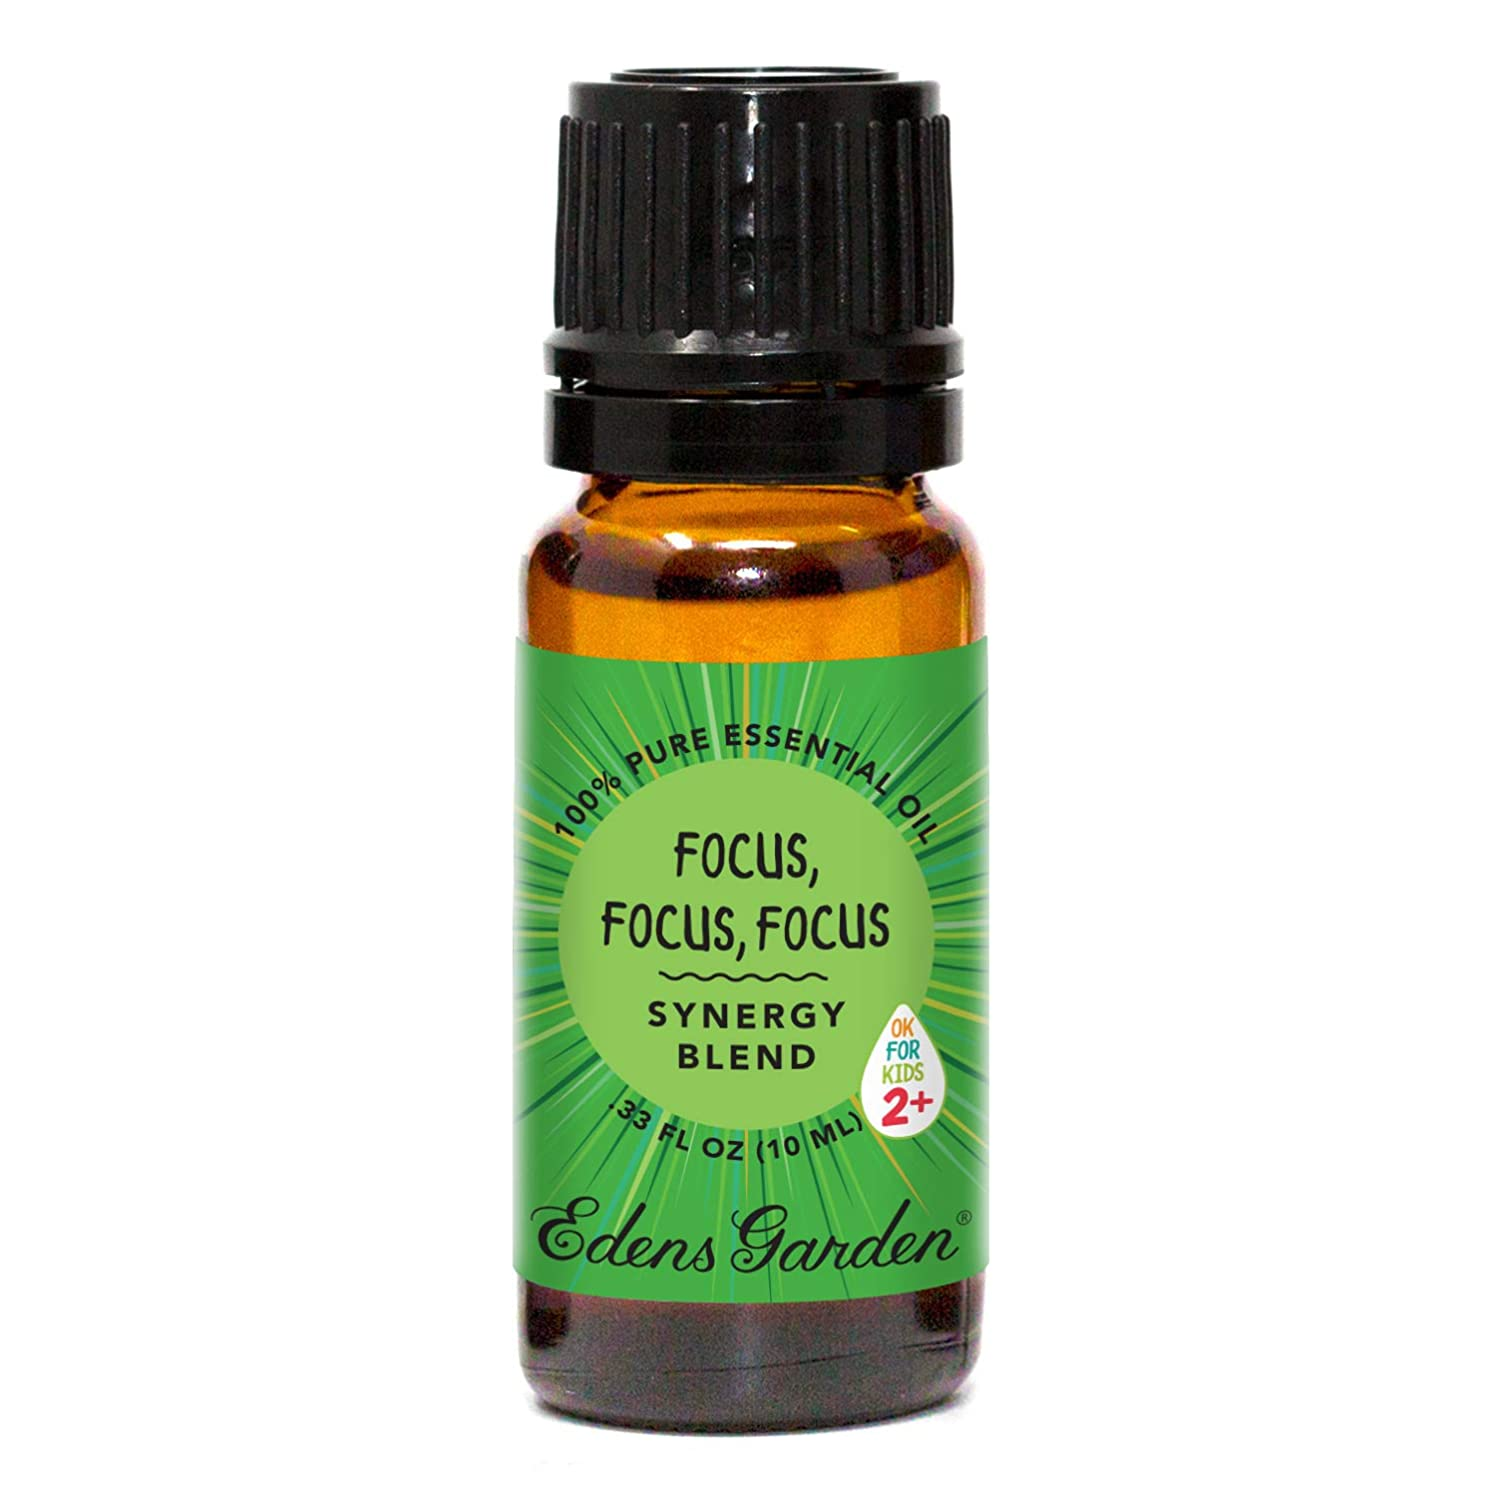 "Edens Garden Focus, Focus, Focus""OK For Kids"" Essential Oil Synergy Blend, 100% Pure Therapeutic Grade (Child Safe 2+, Detox & Energy), 10 ml"